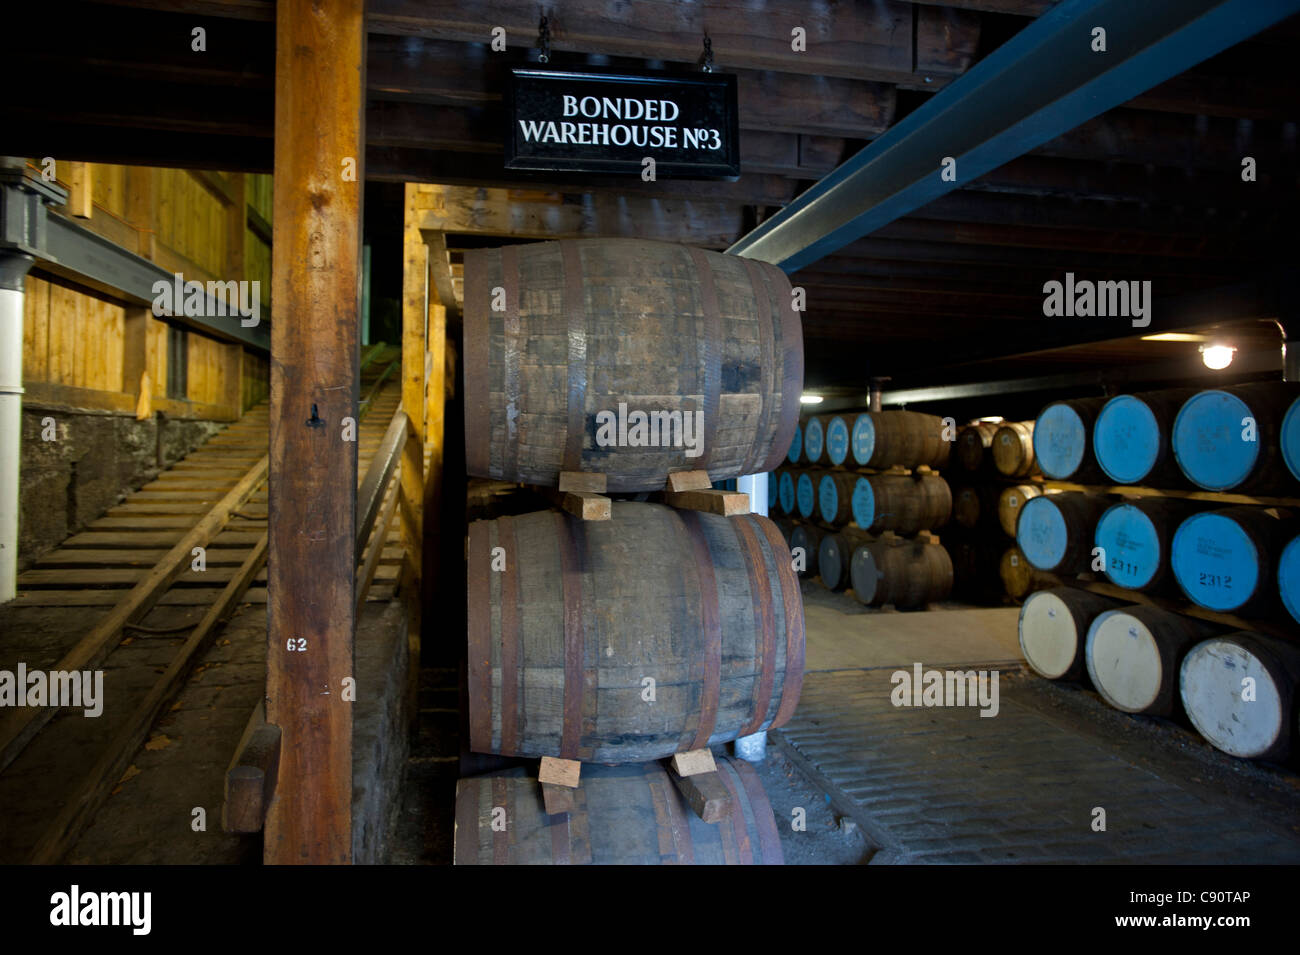 Warehouse of the Strathisla Distillery in Keith, Aberdeenshire, Scotland - Stock Image